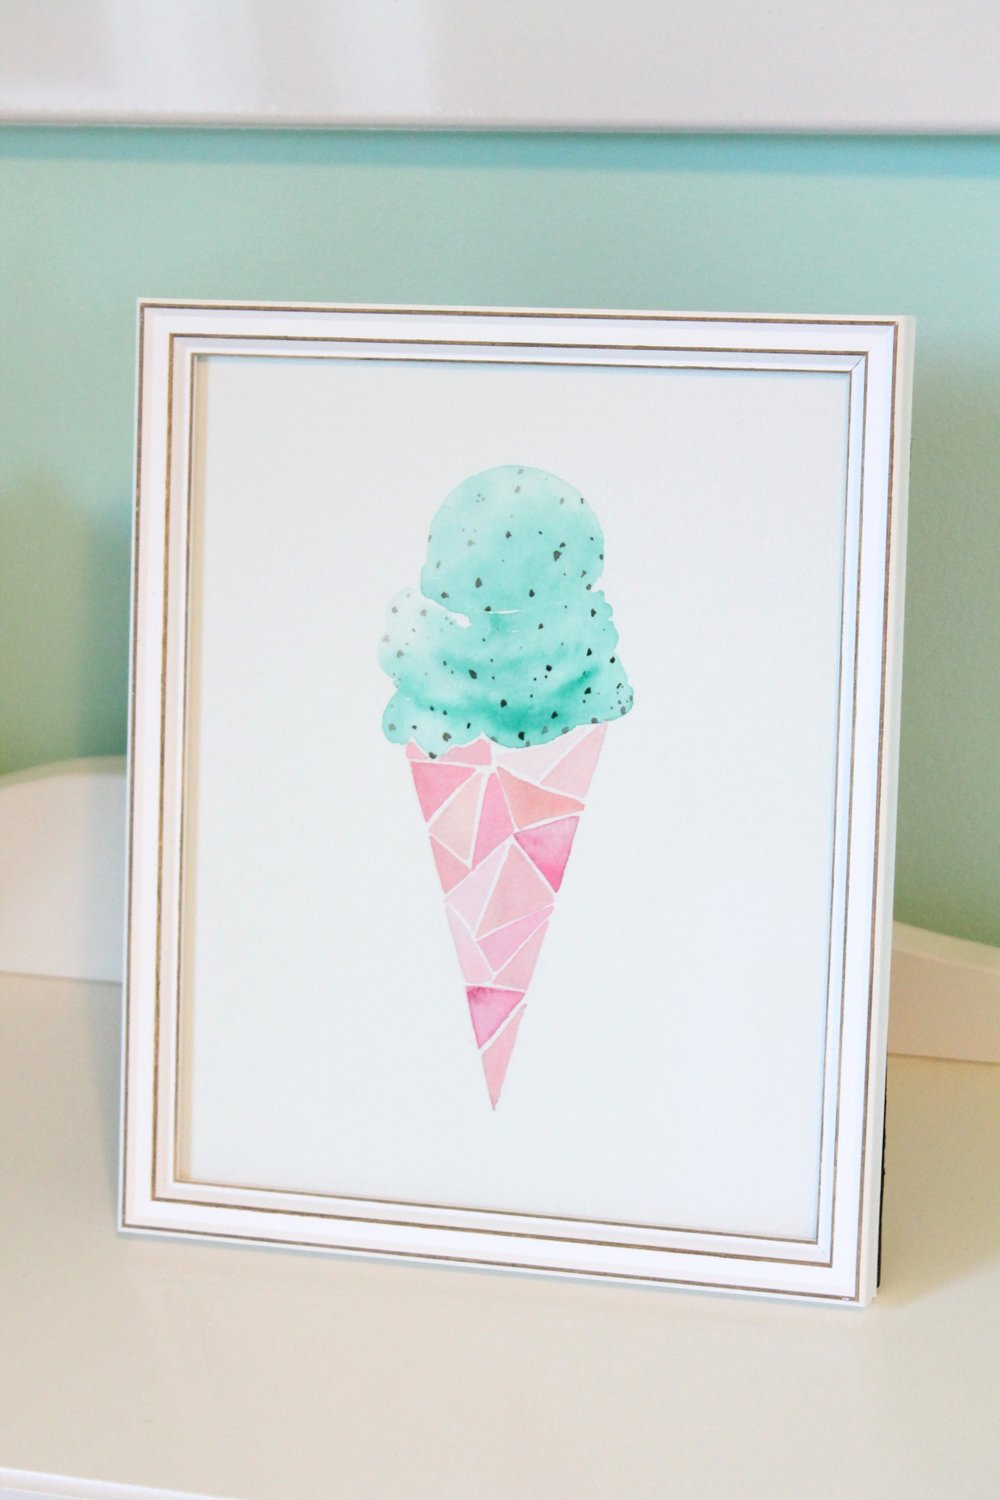 Mint cholocate chip water color painting by Tessie Fay